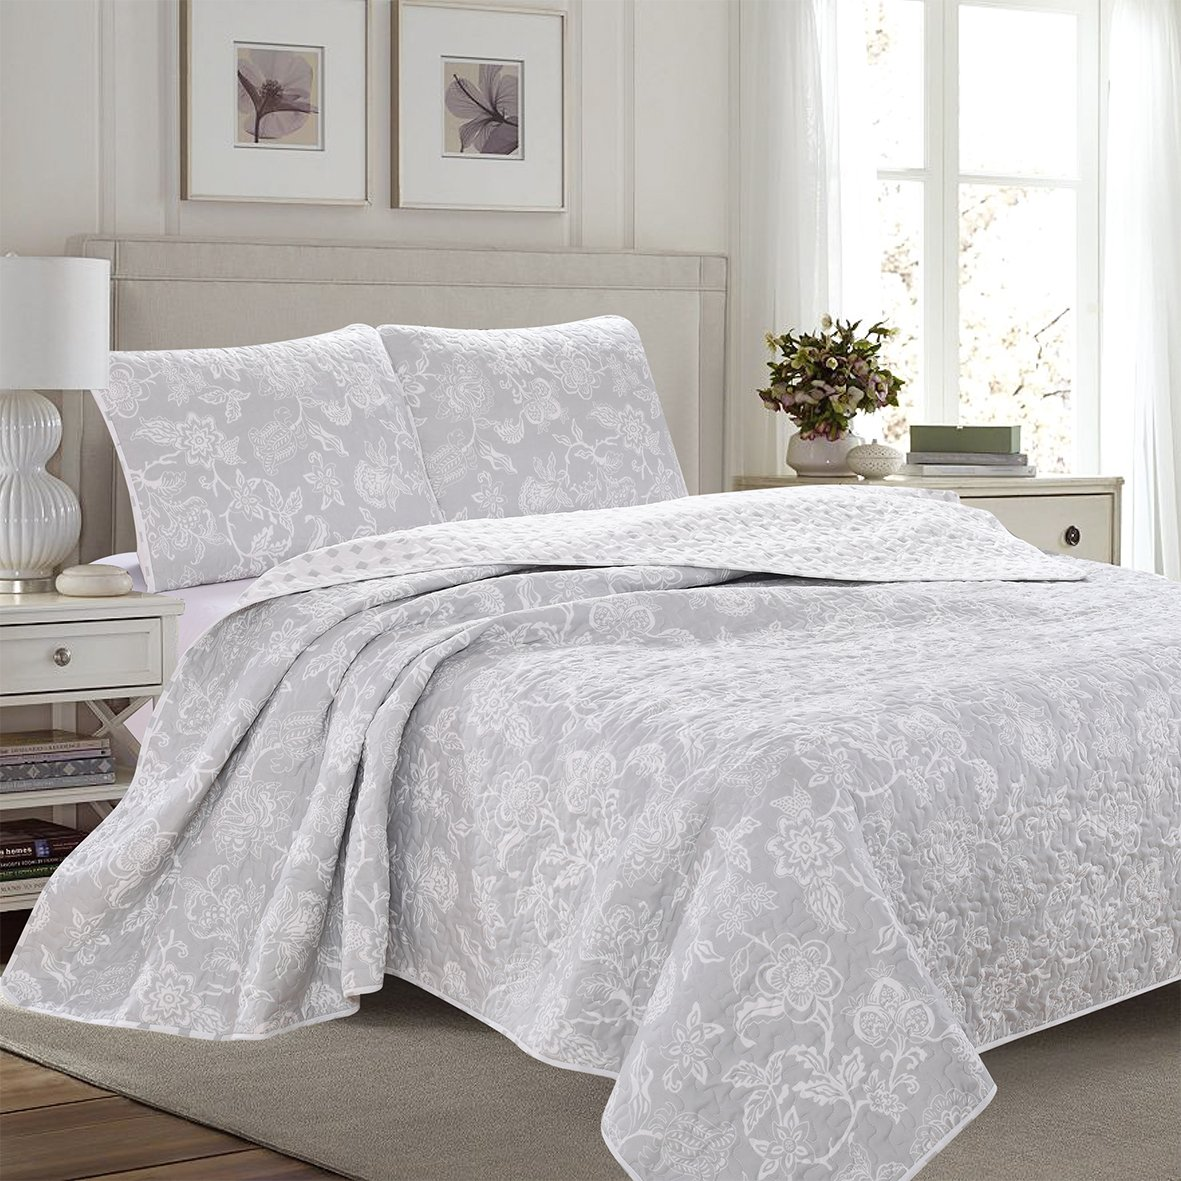 (Twin, Grey) 3-Piece Reversible Quilt Set with Shams. All-Season Bedspread with Floral Print Pattern in Contemporary Colours. Emma Collection By Great Bay Home Brand. (Twin, Grey) B07B5YSHTJ ツイン グレー グレー ツイン